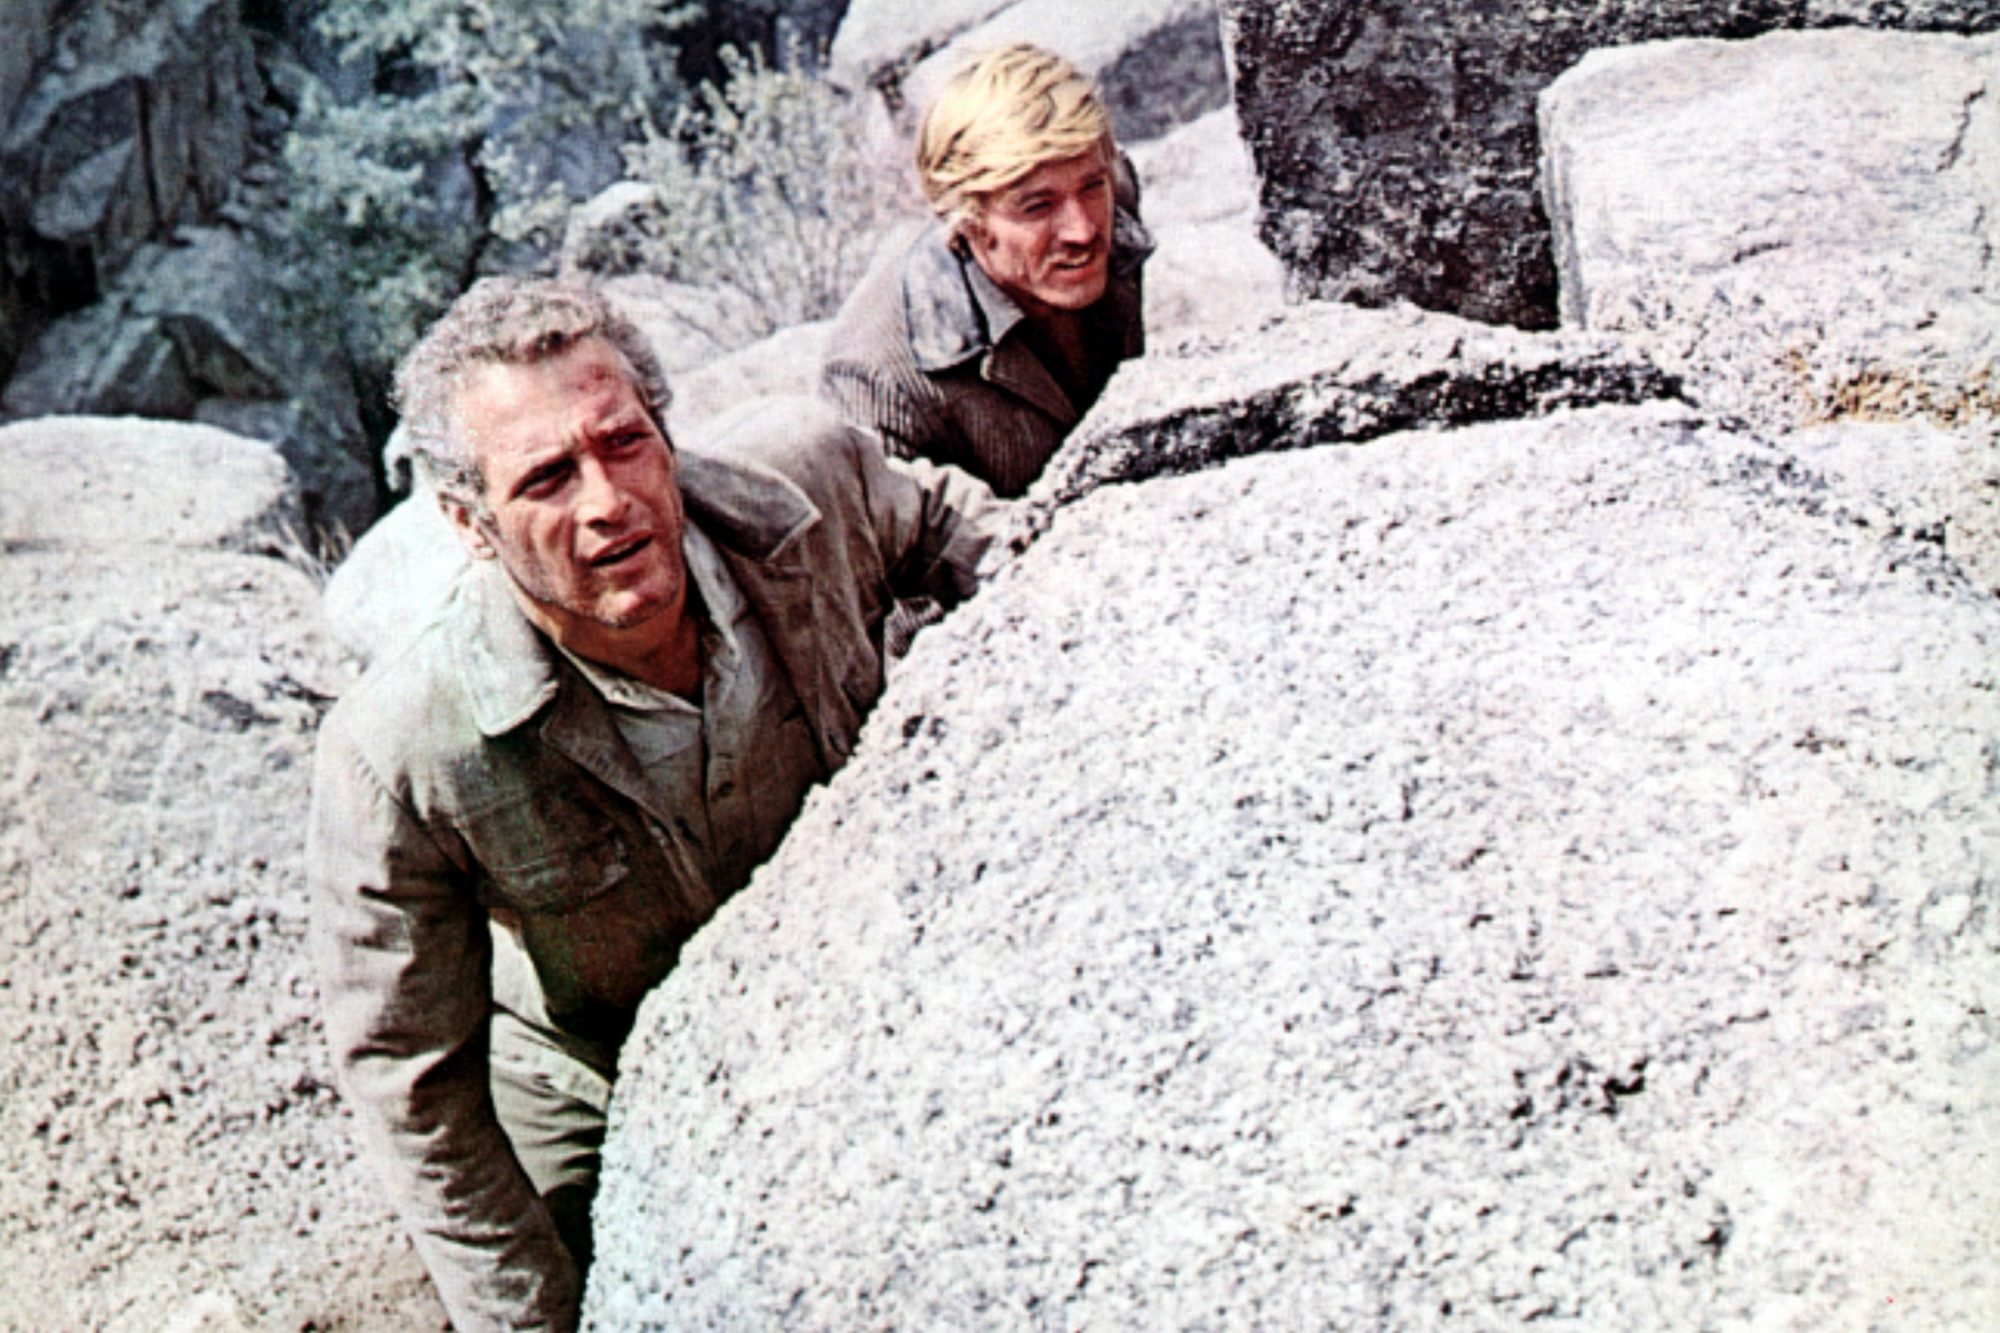 BUTCH CASSIDY AND THE SUNDANCE KID, Paul Newman, Robert Redford, 1969. TM and Copyright (c) 20th Cen